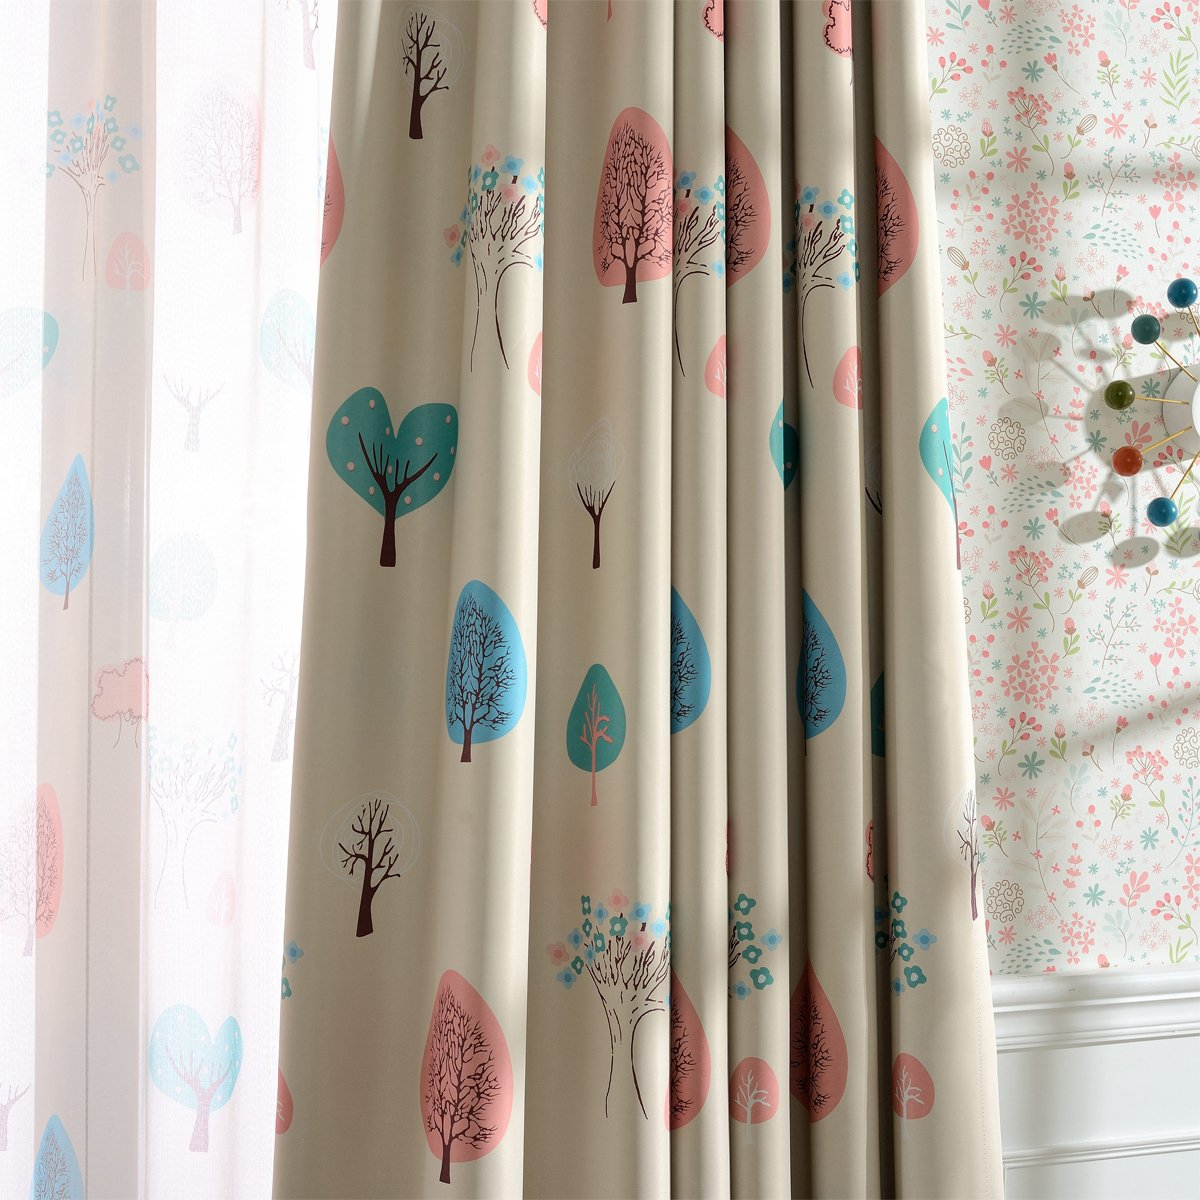 """Melodieux Cartoon Trees Room Darkening Blackout Grommet Top Curtains/Drapes for Kids Room, 52"""" W x 63"""" L (1 Panel)"""